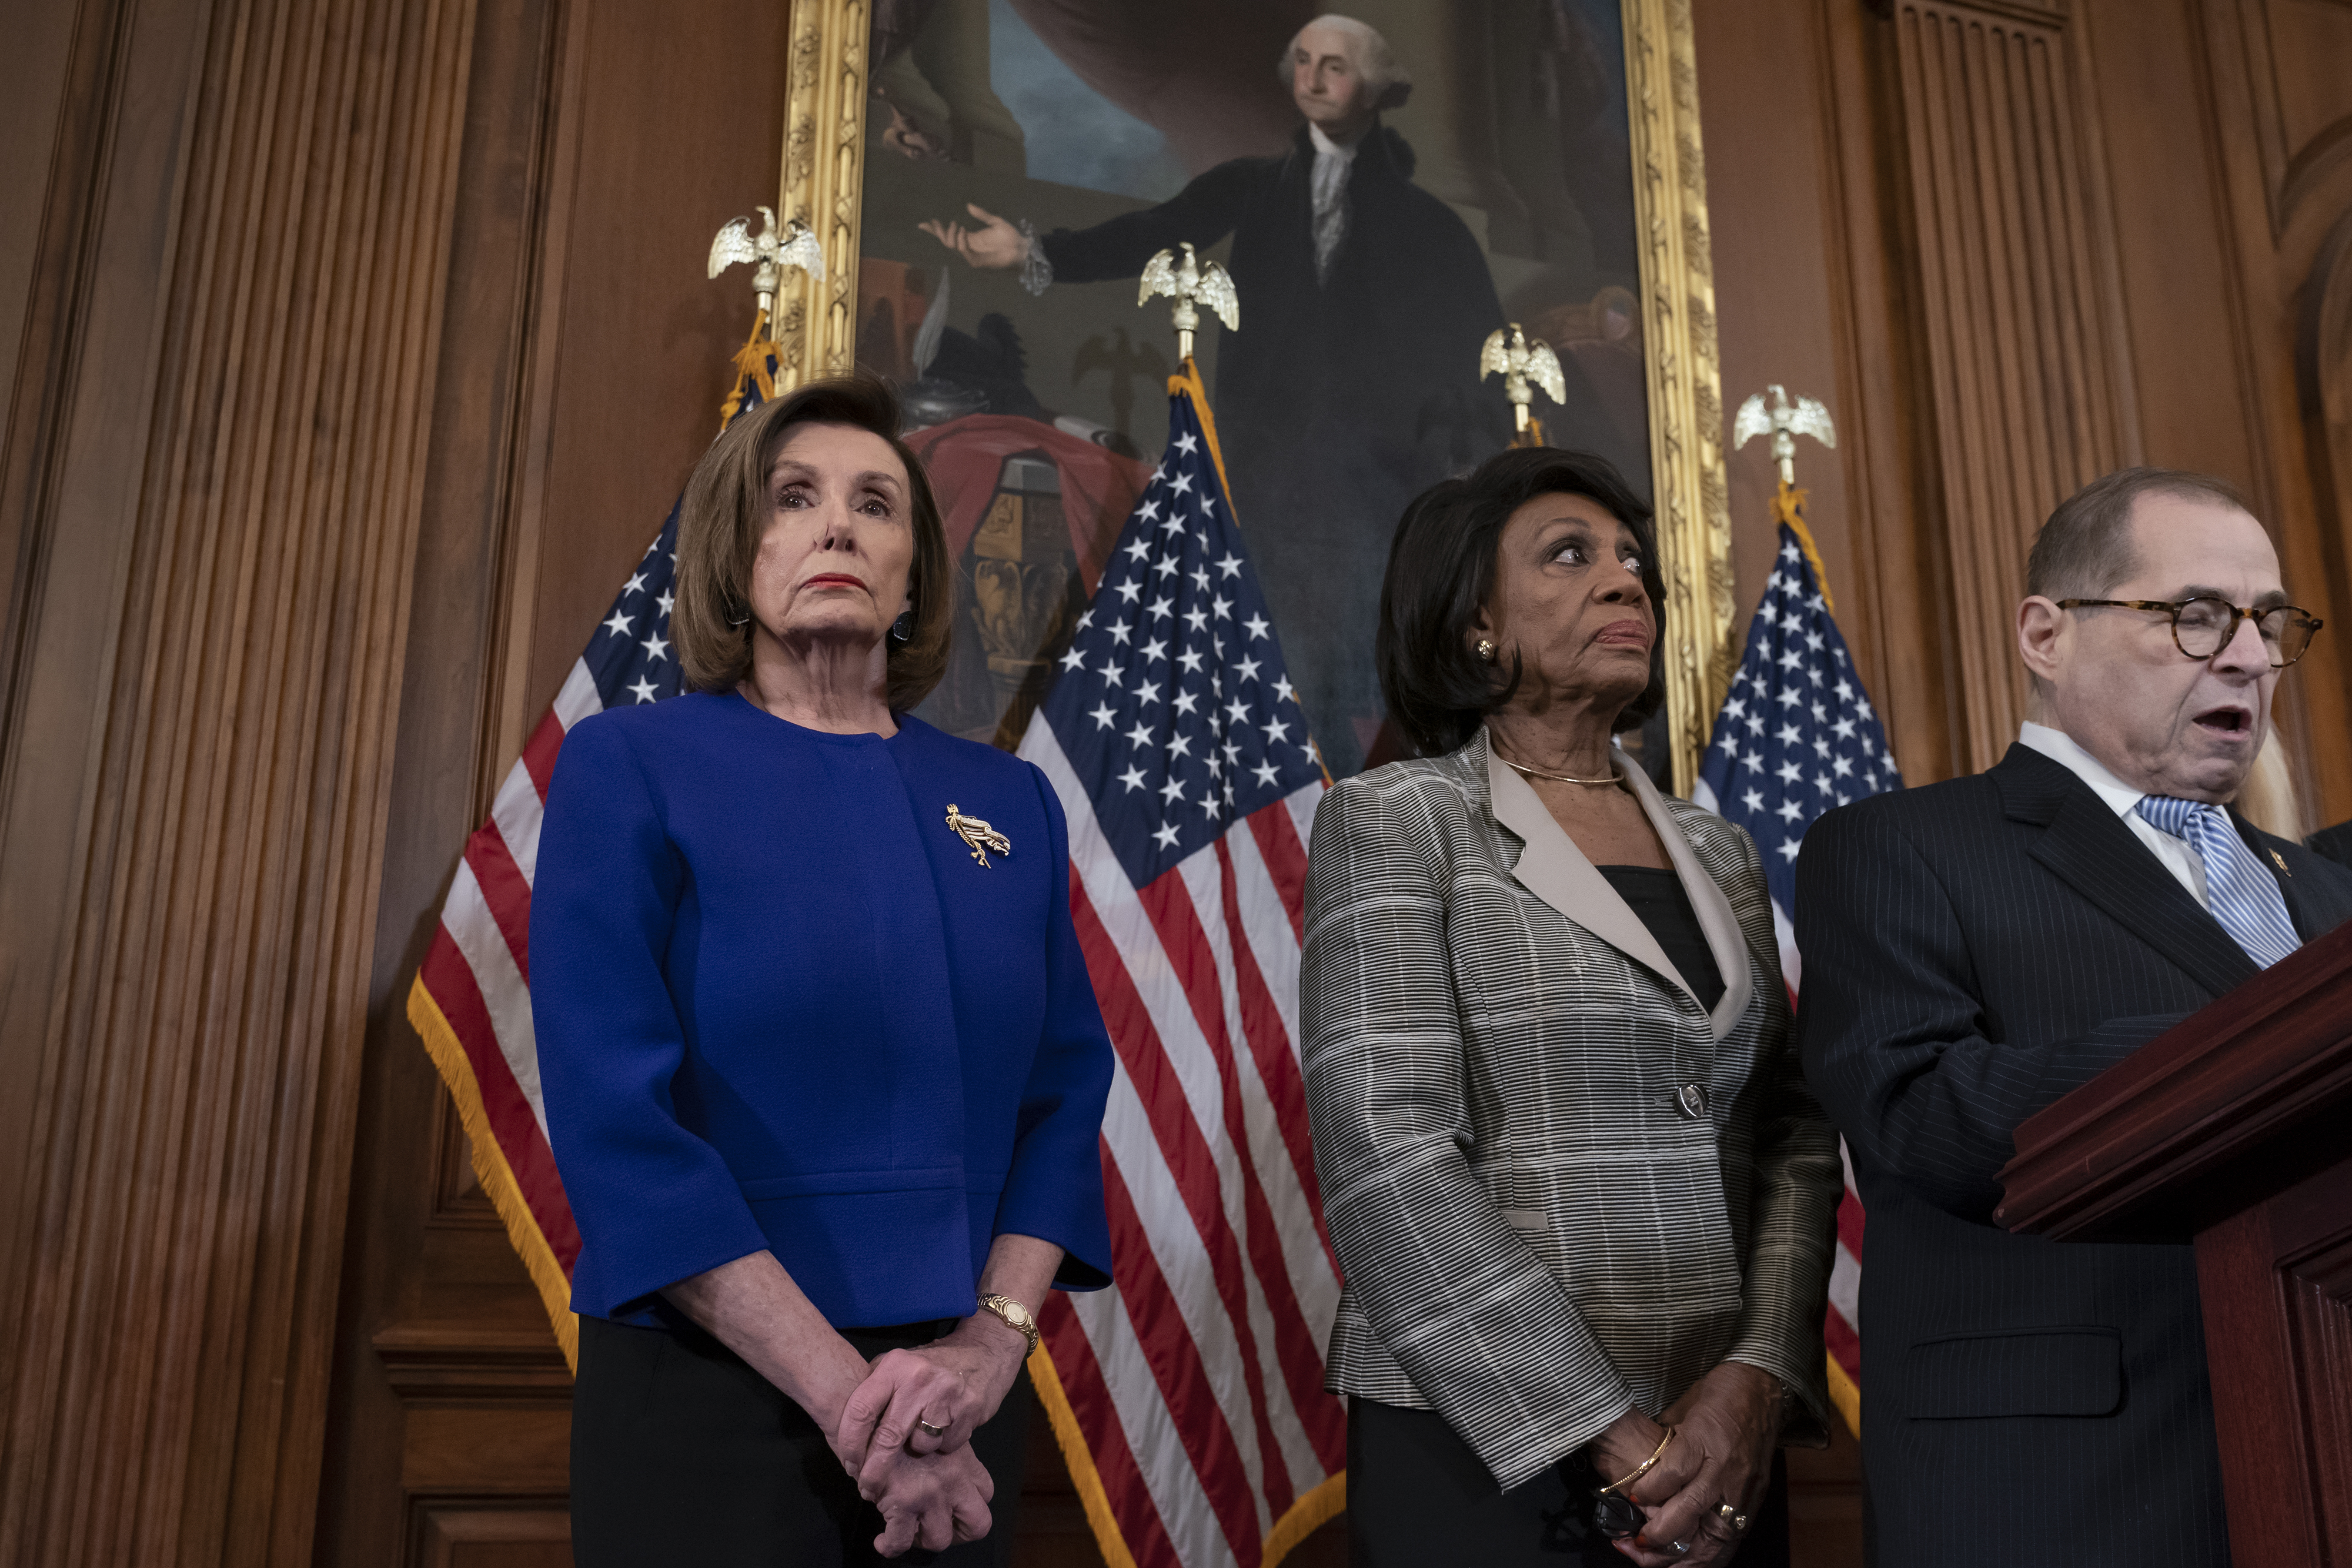 From left, Speaker of the House Nancy Pelosi, D-Calif., House Financial Services Committee Chairwoman Maxine Waters, D-Calif., and House Judiciary Committee Chairman Jerrold Nadler, D-N.Y., announce they are pushing ahead with two articles of impeachment against President Donald Trump — abuse of power and obstruction of Congress — charging he corrupted the U.S. election process and endangered national security in his dealings with Ukraine, at the Capitol in Washington, Tuesday, Dec. 10, 2019. (AP Photo/J. Scott Applewhite) ORG XMIT: DCSA124